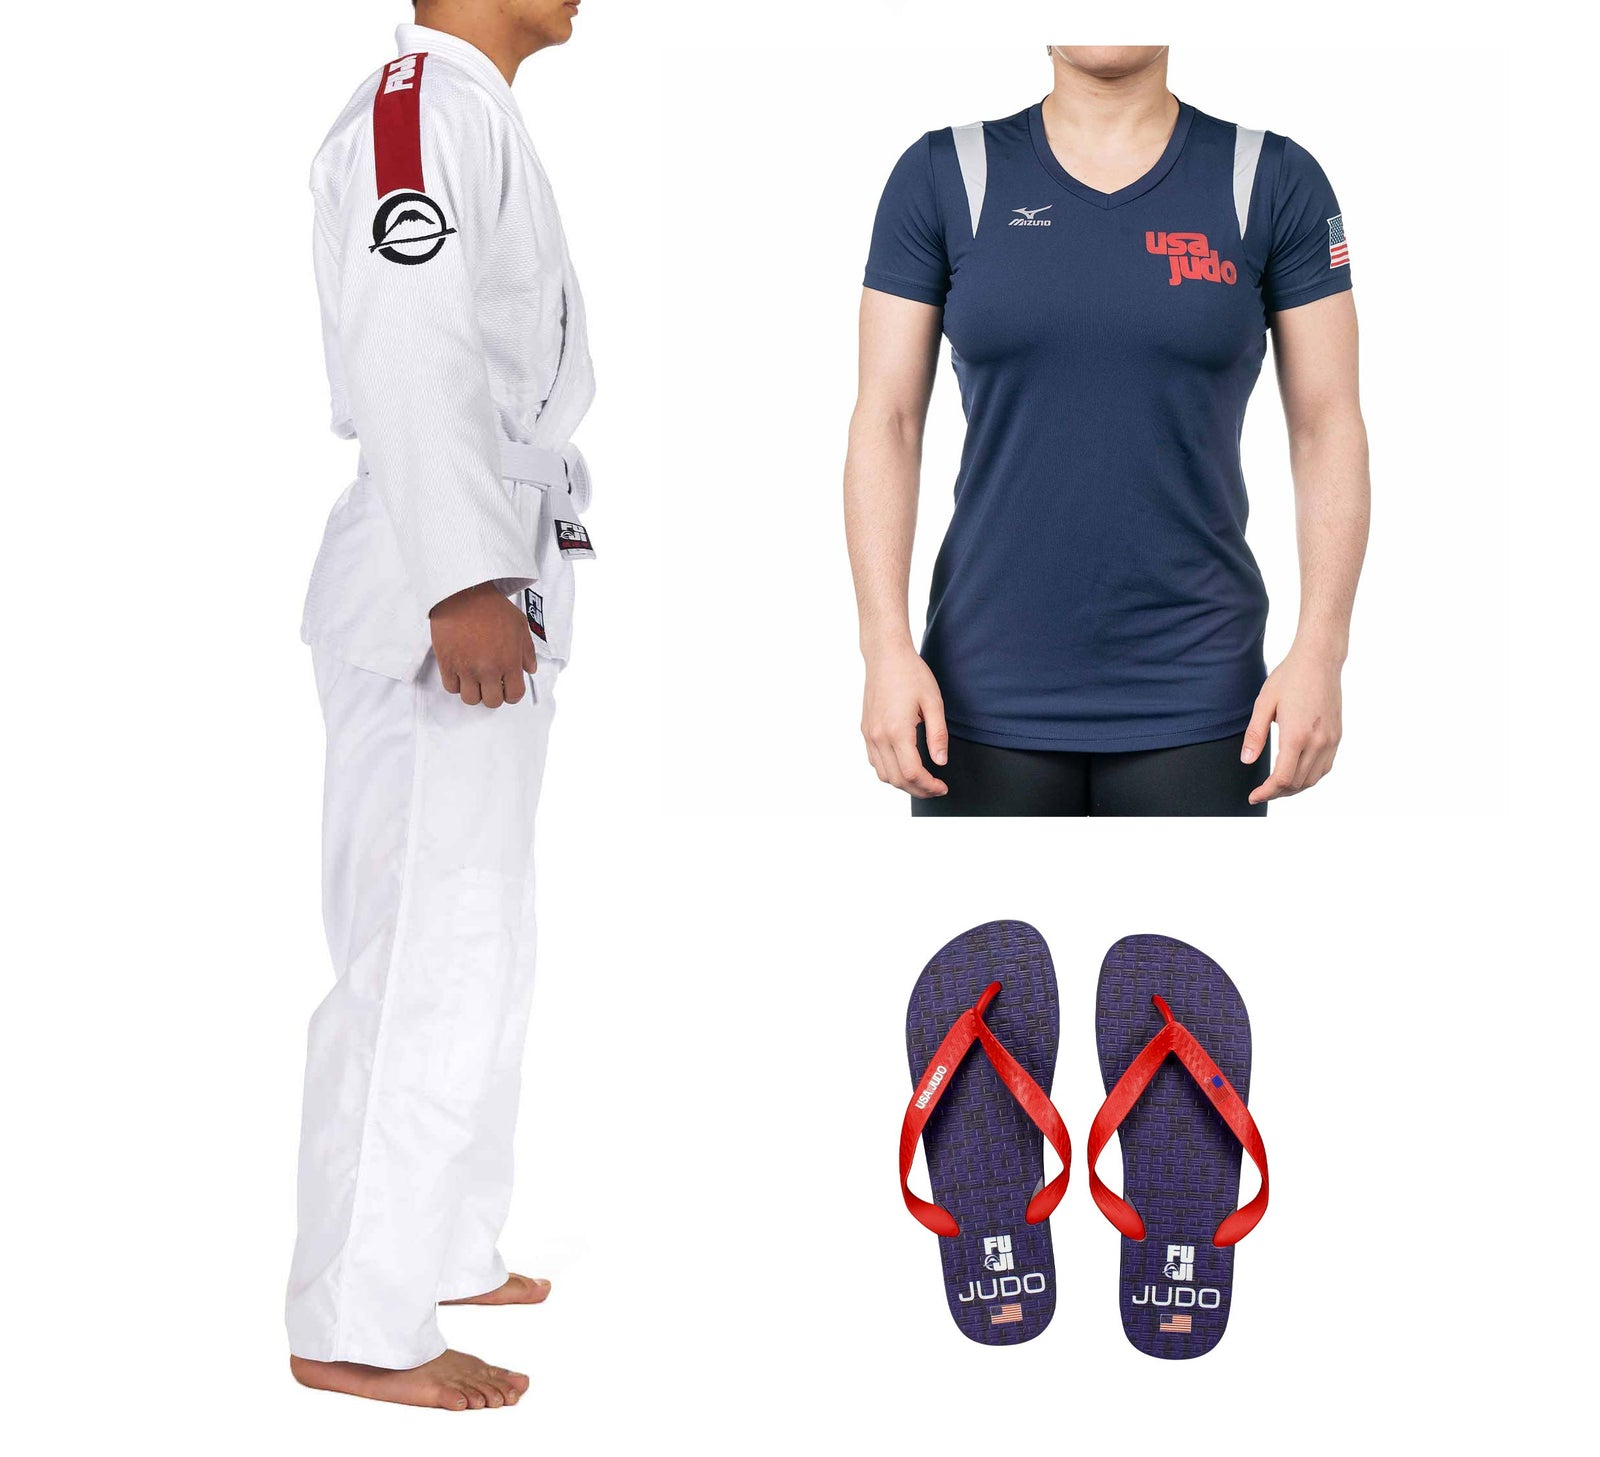 USA Judo Women's Bundle (3 Items)